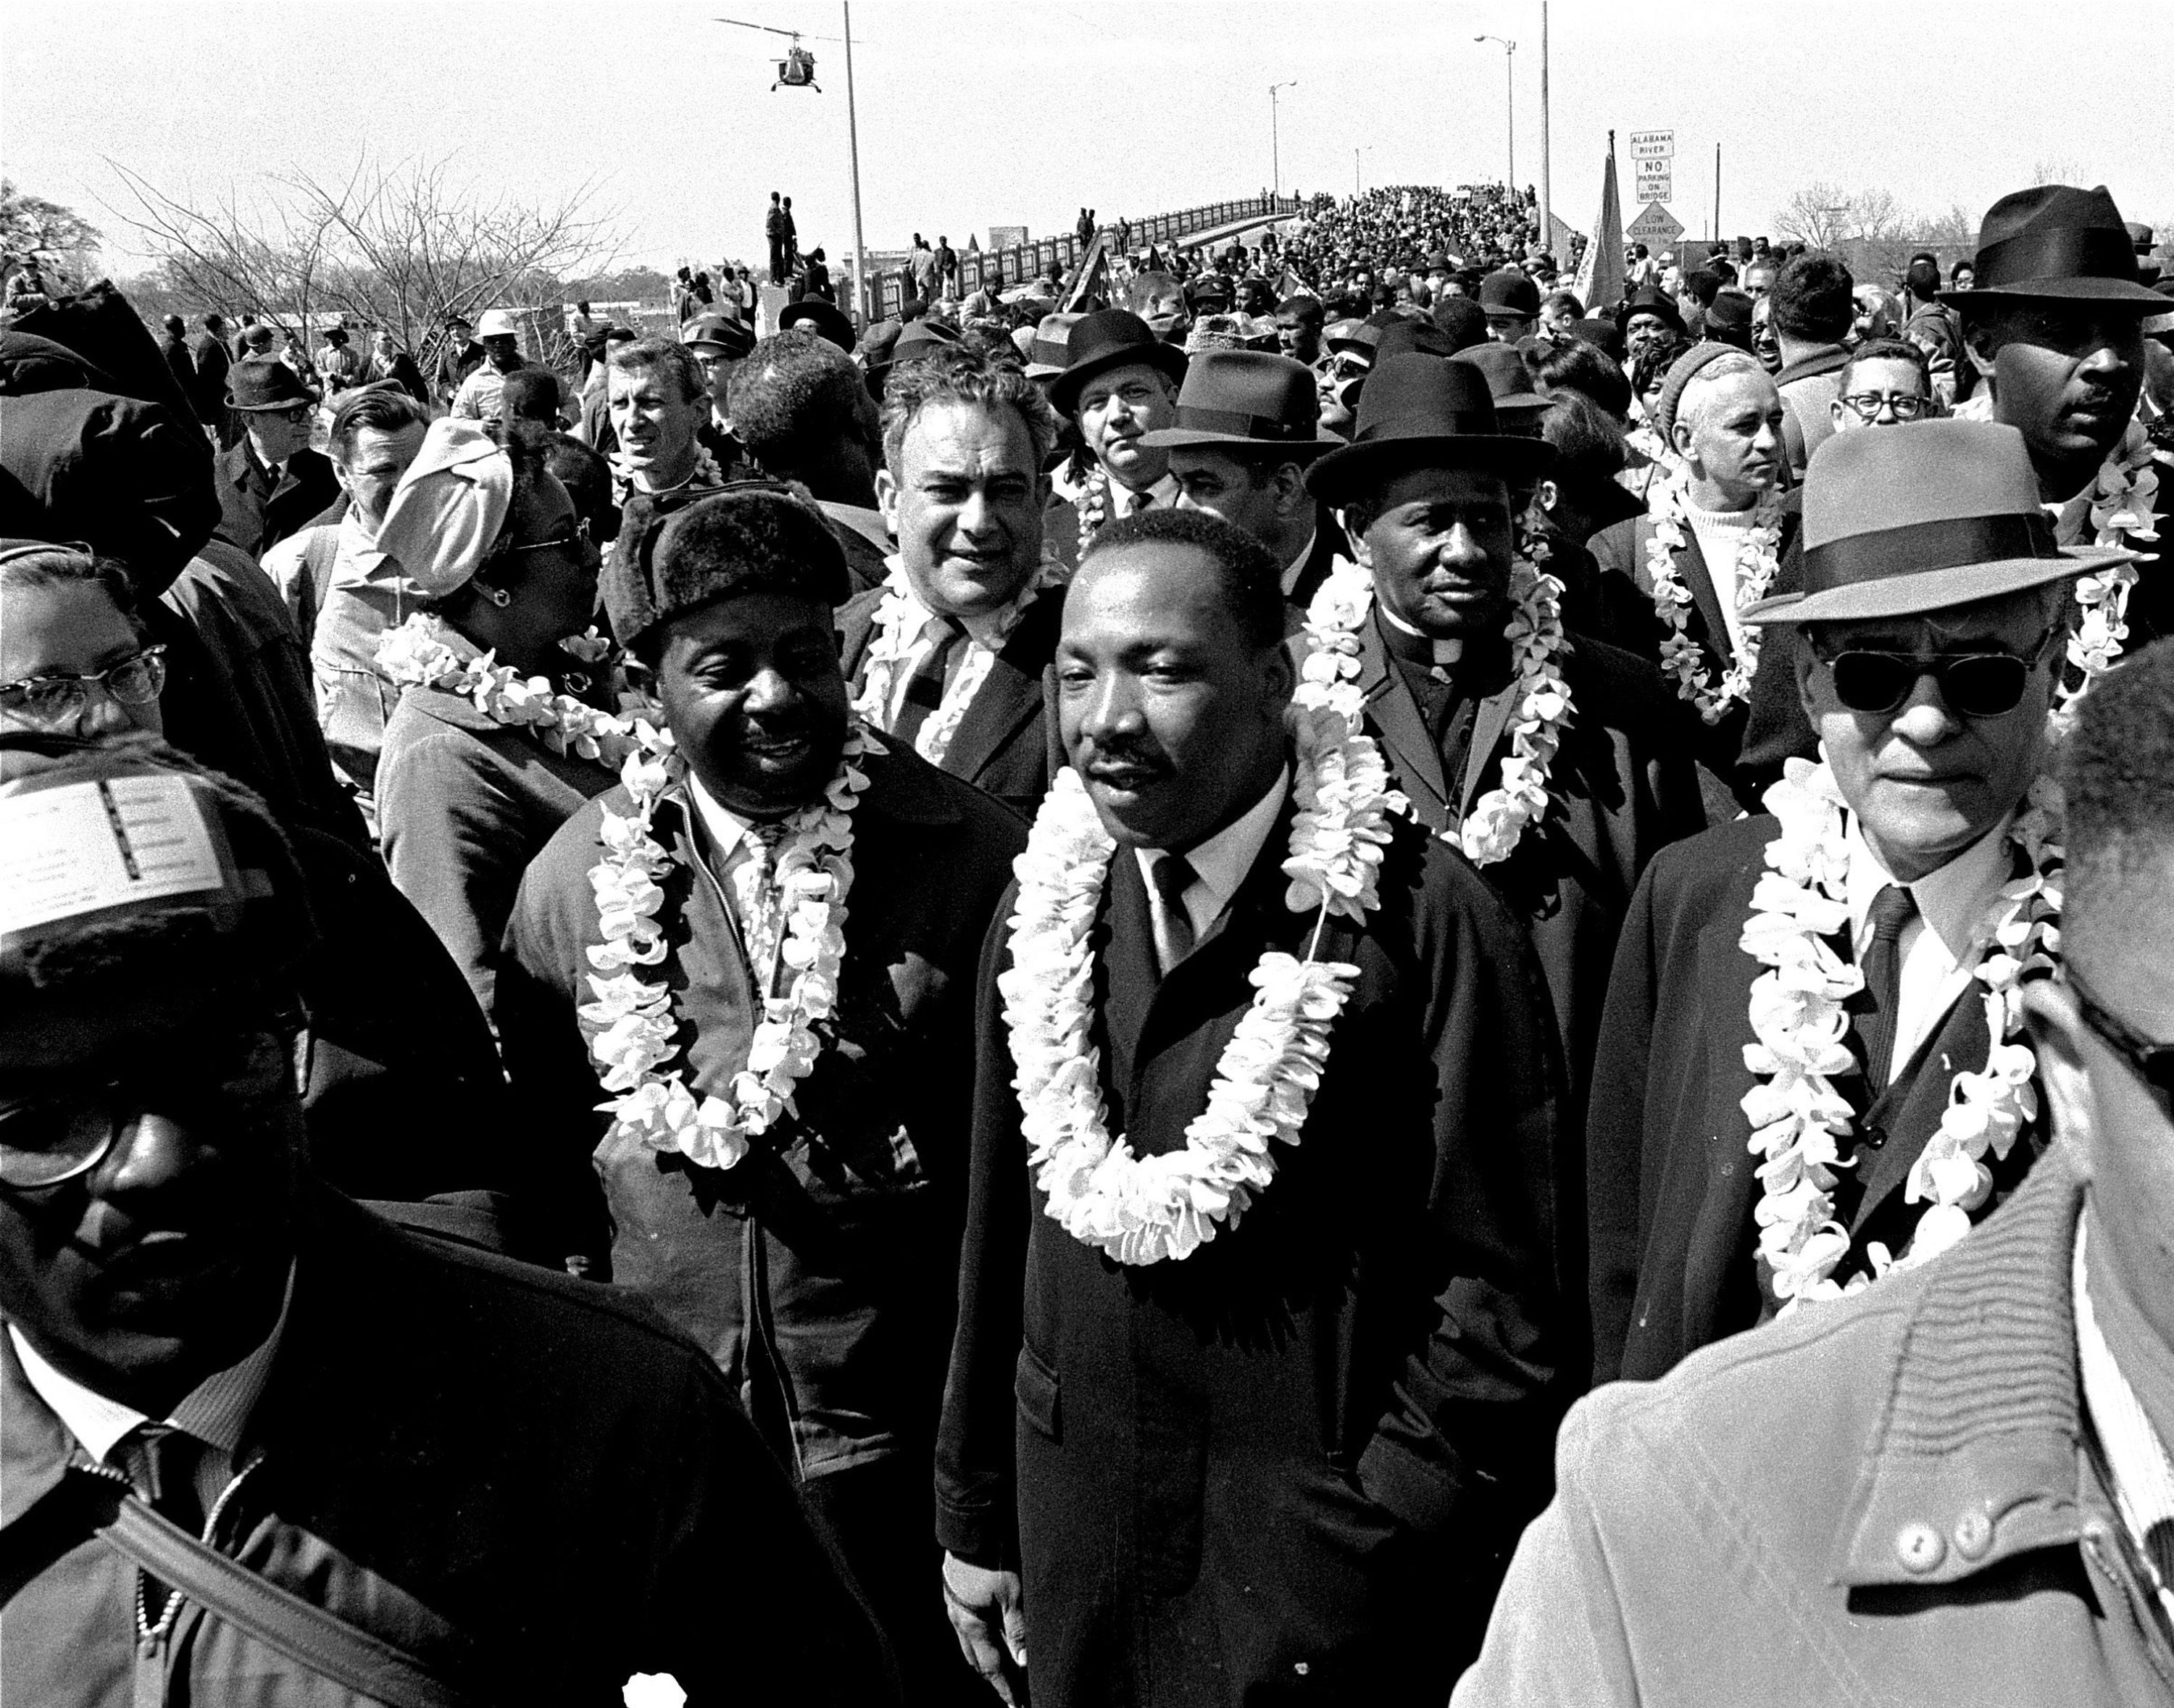 Voting Rights March, SELMA, USA